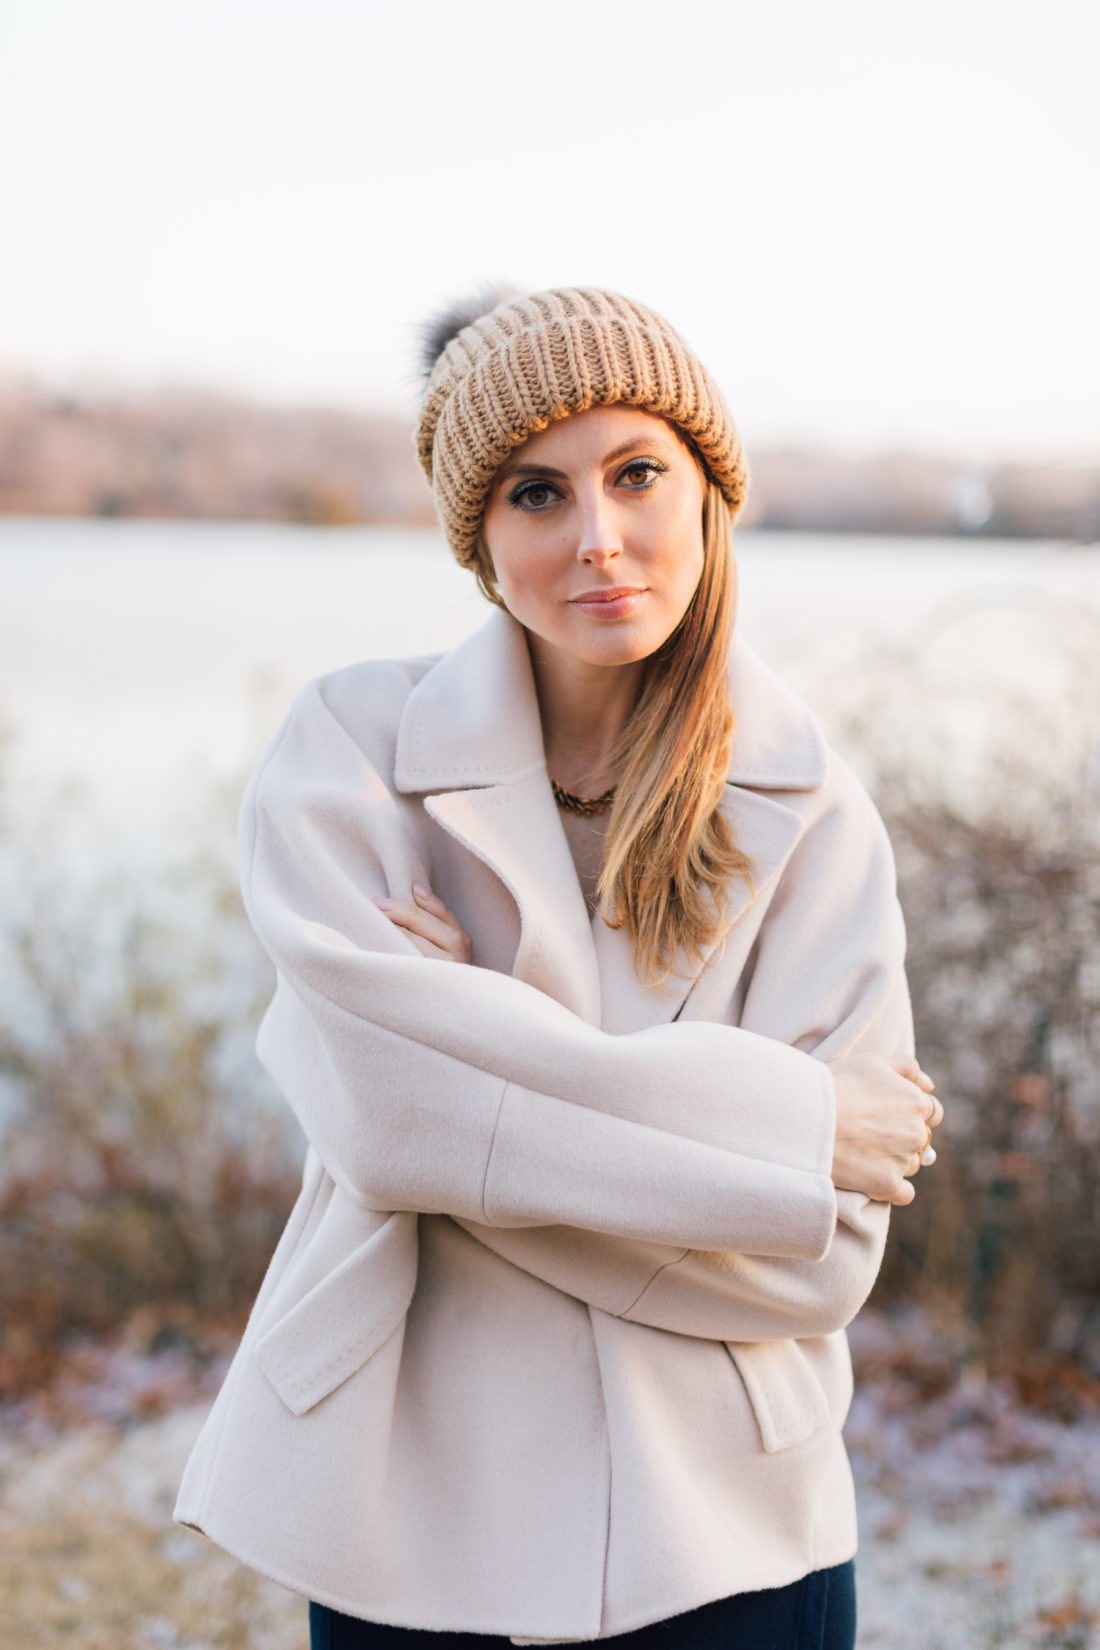 Eva Amurri shares how she's letting go of toxic relationships this holiday season